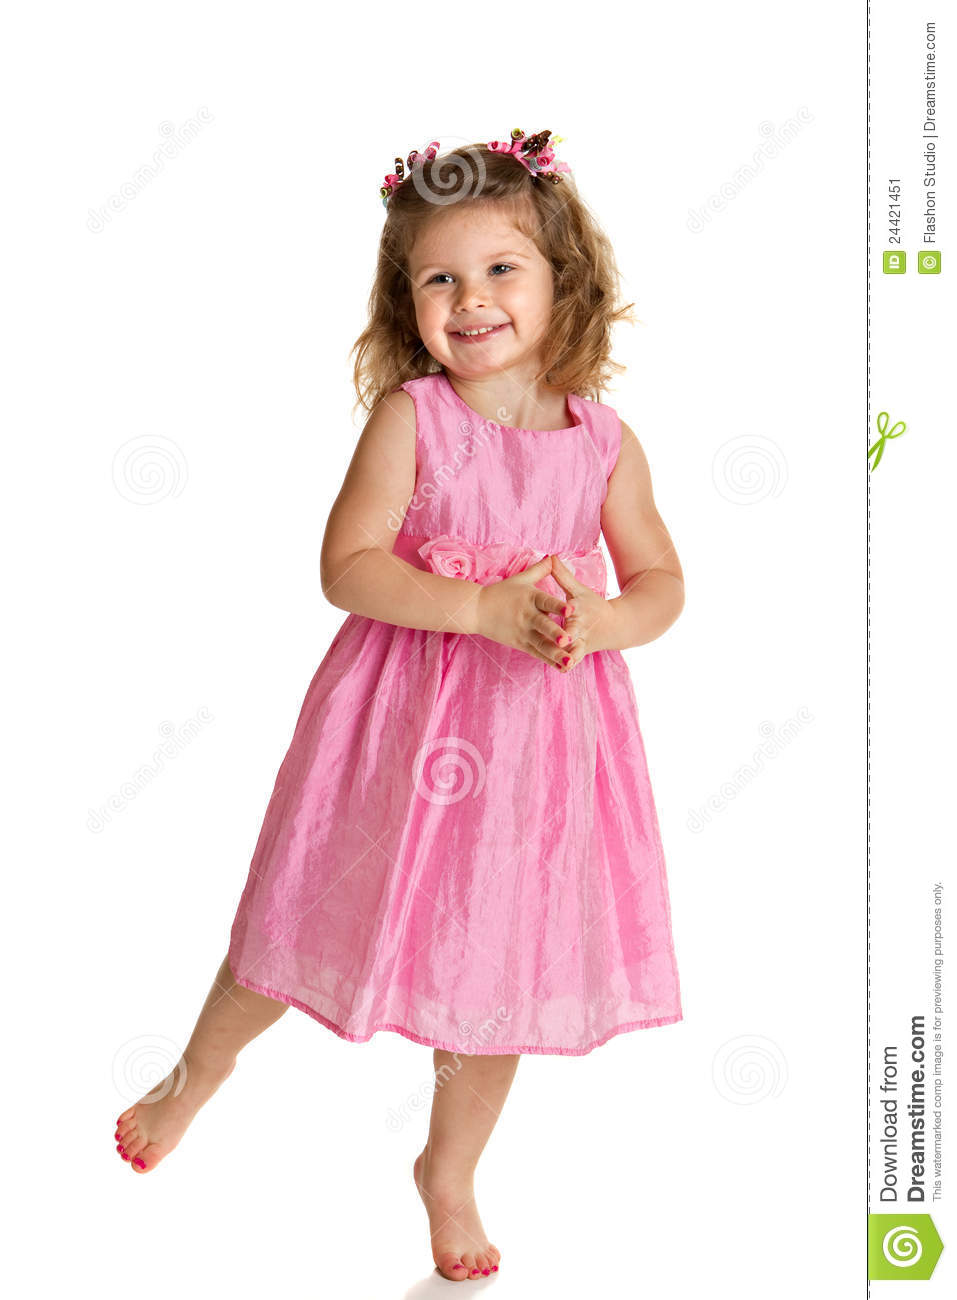 Happy Little Girl Standing On White Background Stock Image - Image ...